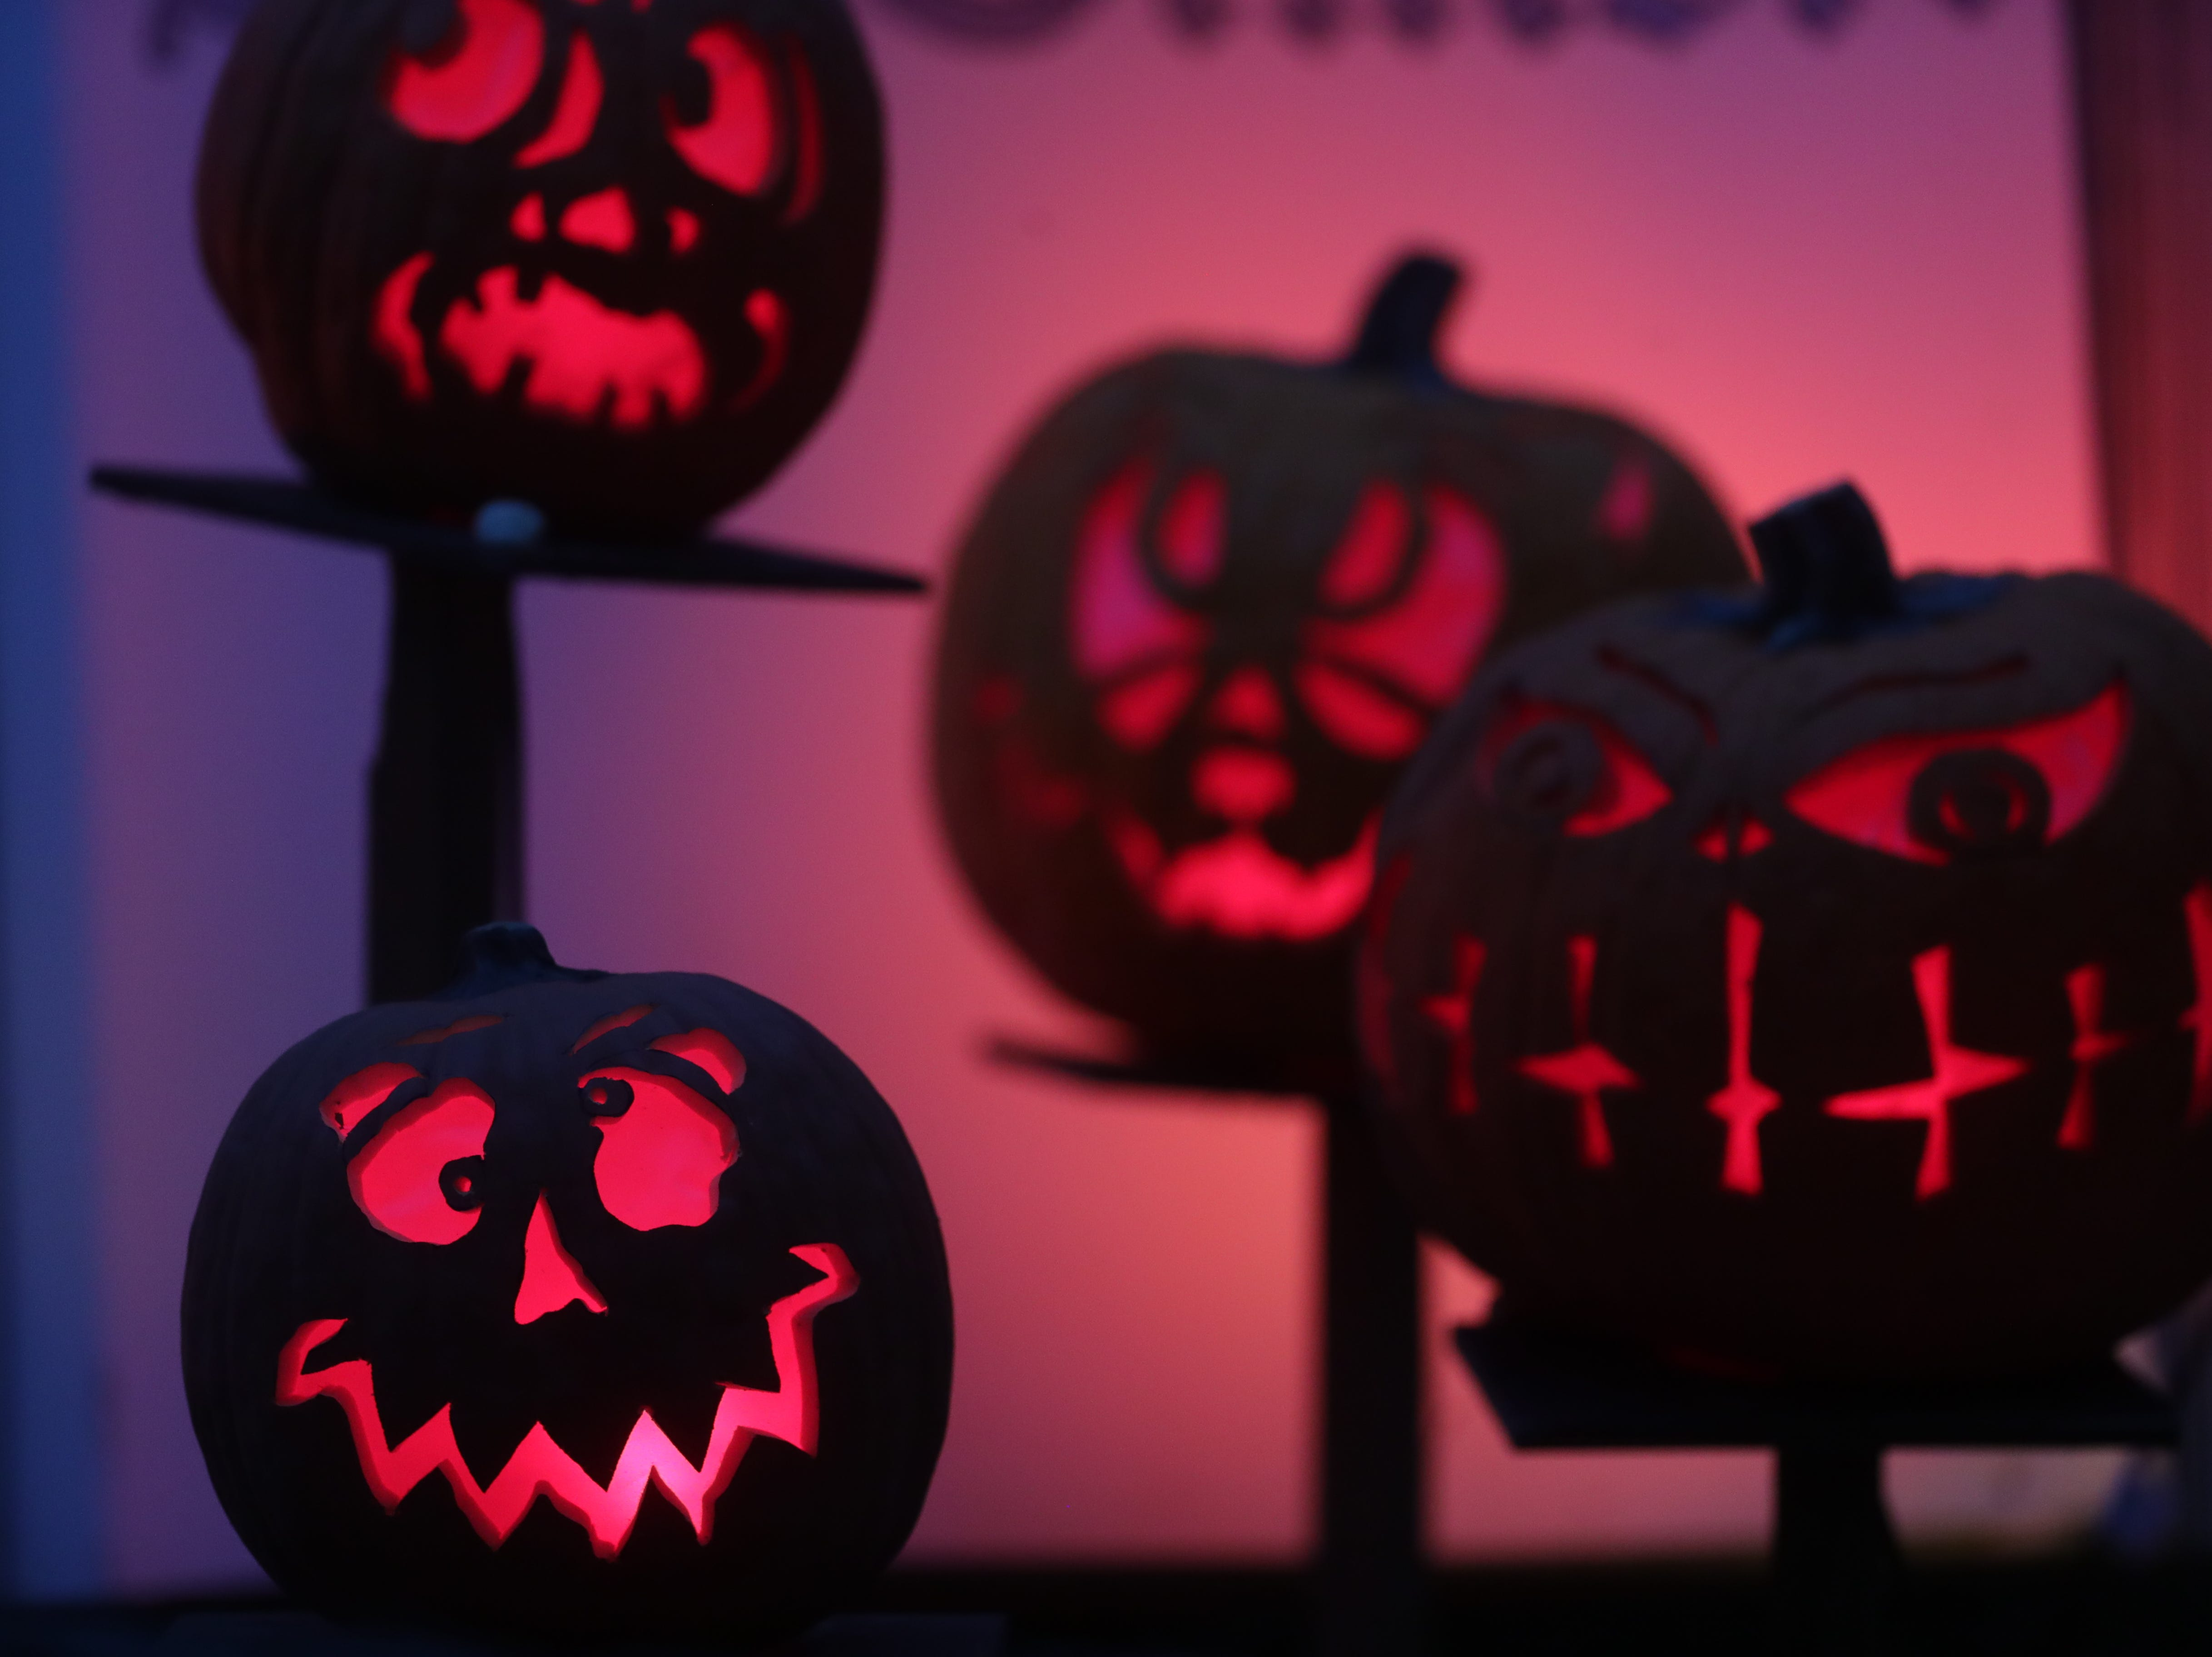 A few of the decorative pumpkins at this year's Jack O' Lantern Spectacular.